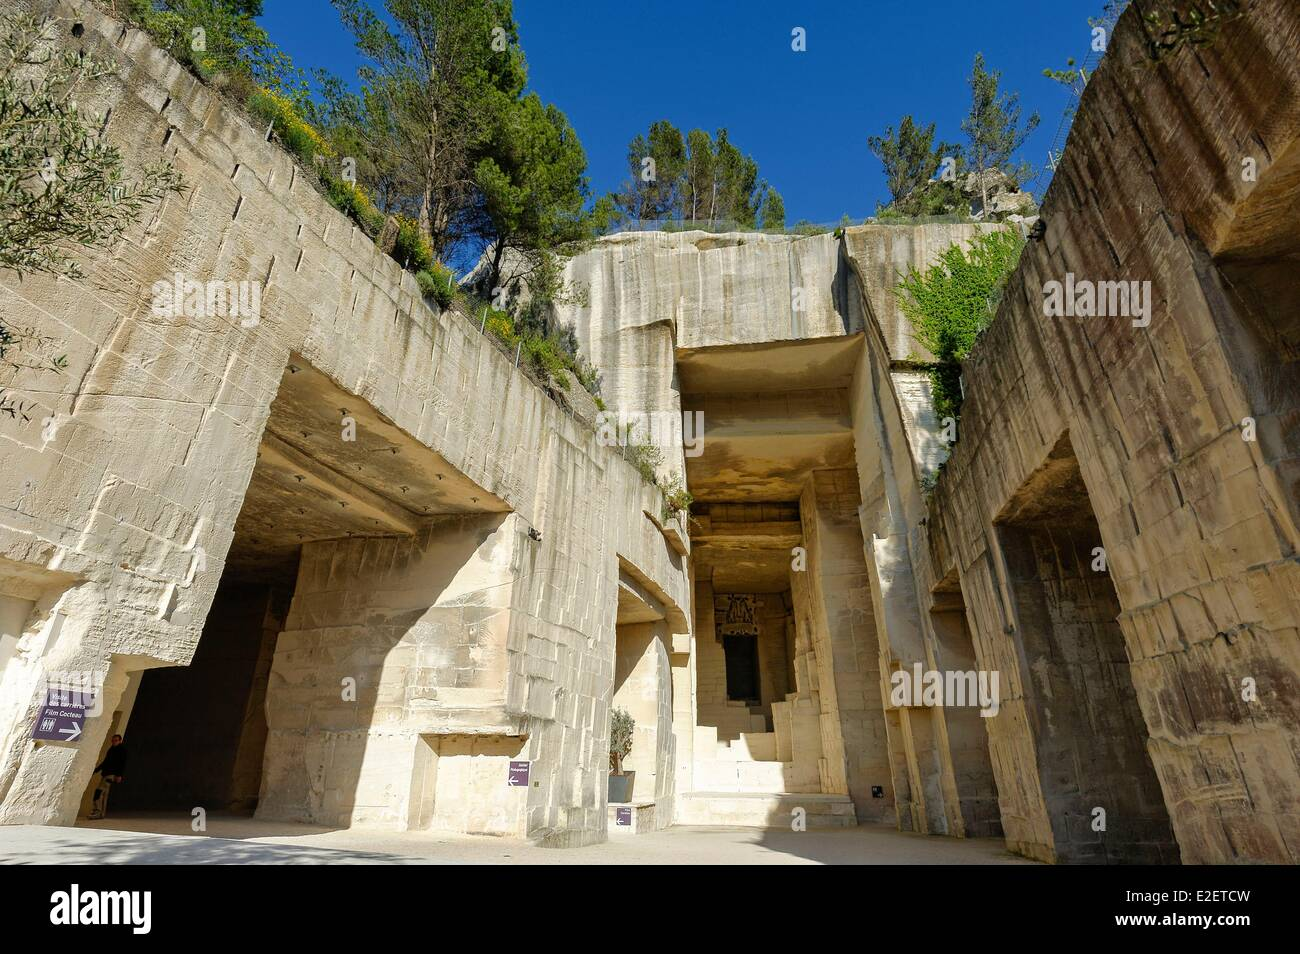 France Bouches du Rhone Les Baux de Provence Careers of Light former place of extraction of the white limestone - Stock Image